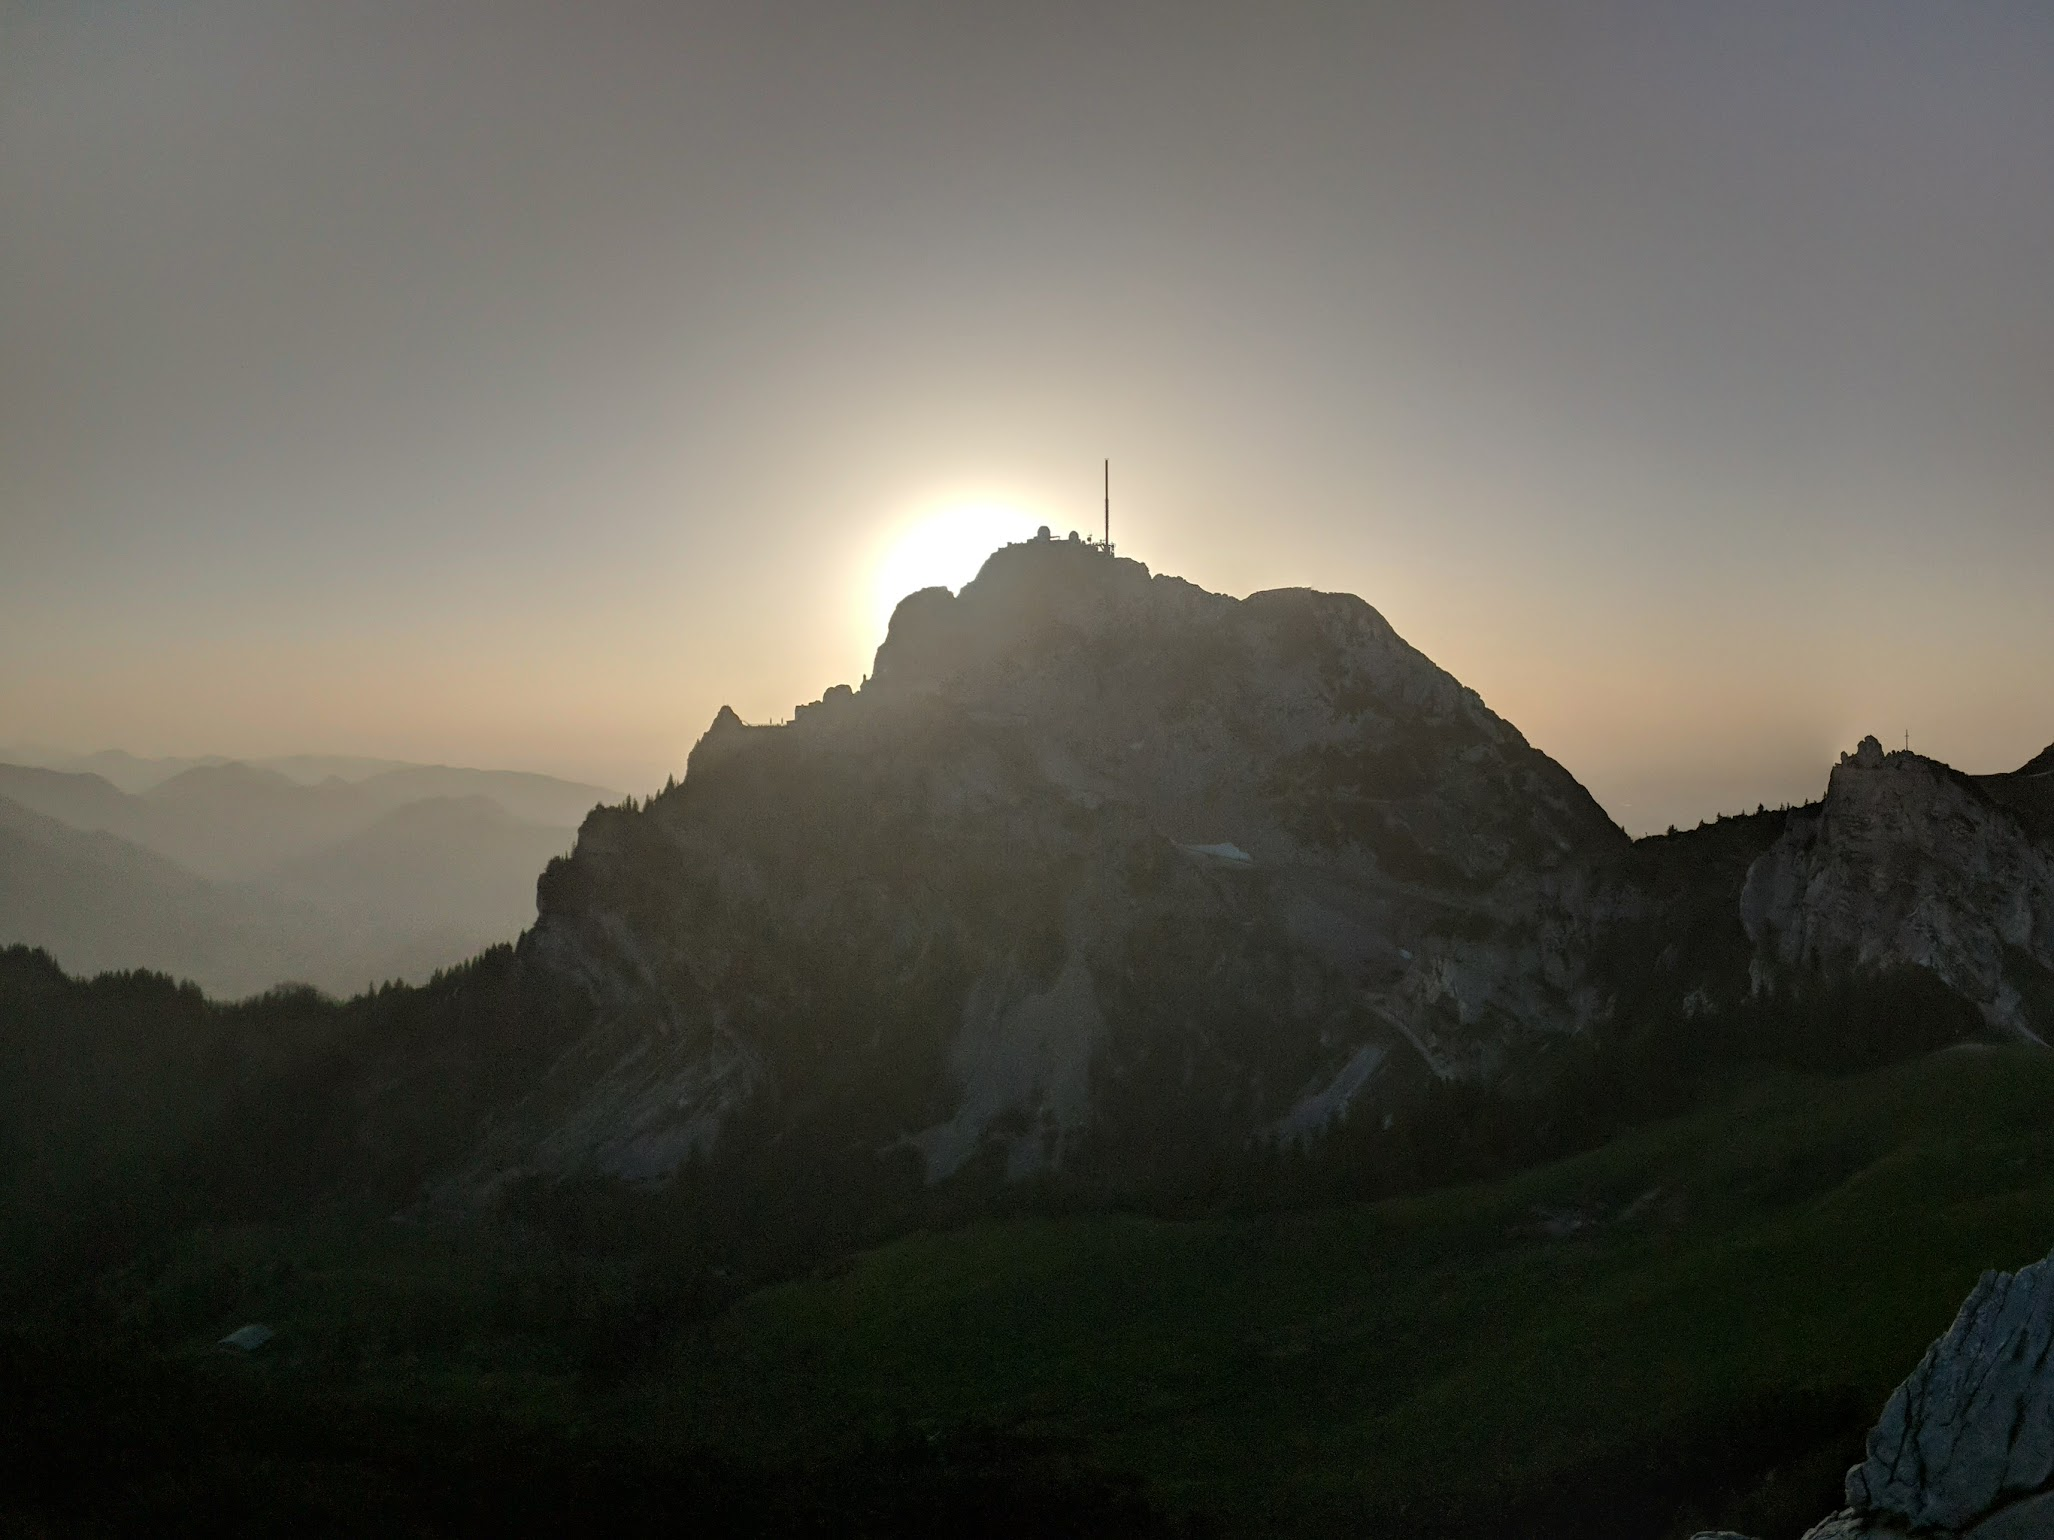 Wendelstein and Lacherspitze evening hike - Jun 19